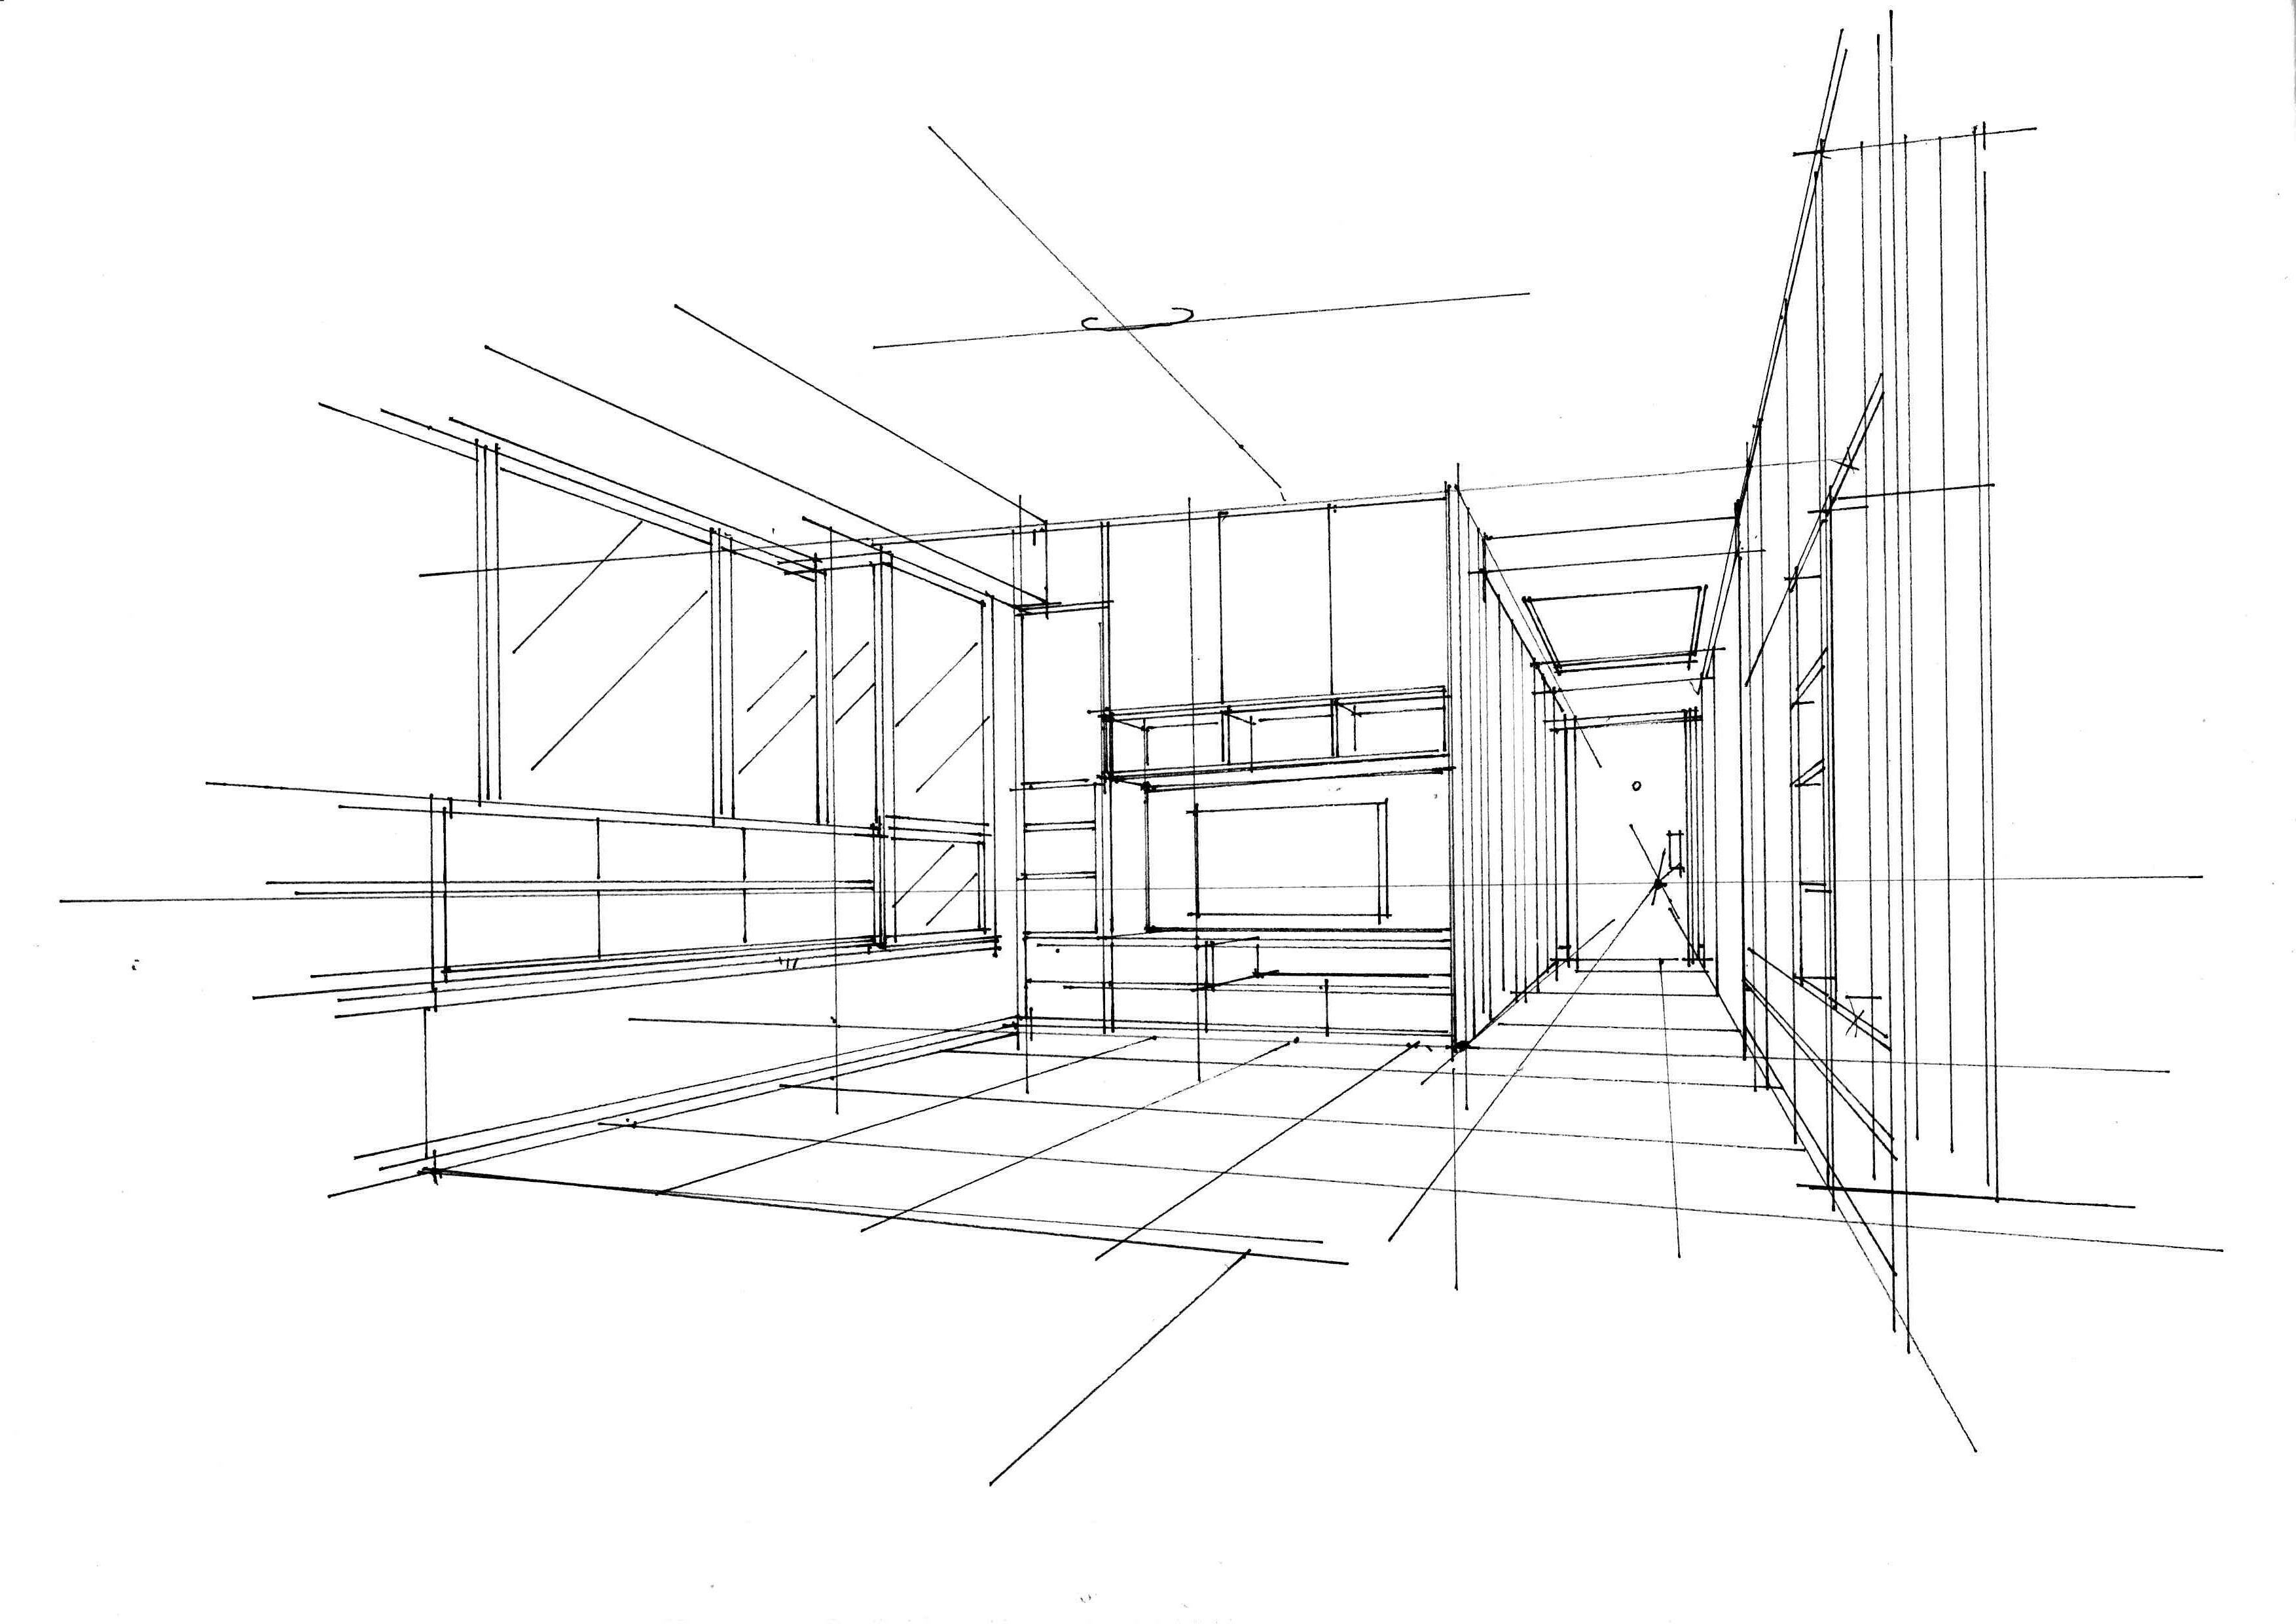 Pin By Tin Yan Lee On Perspective Sketch